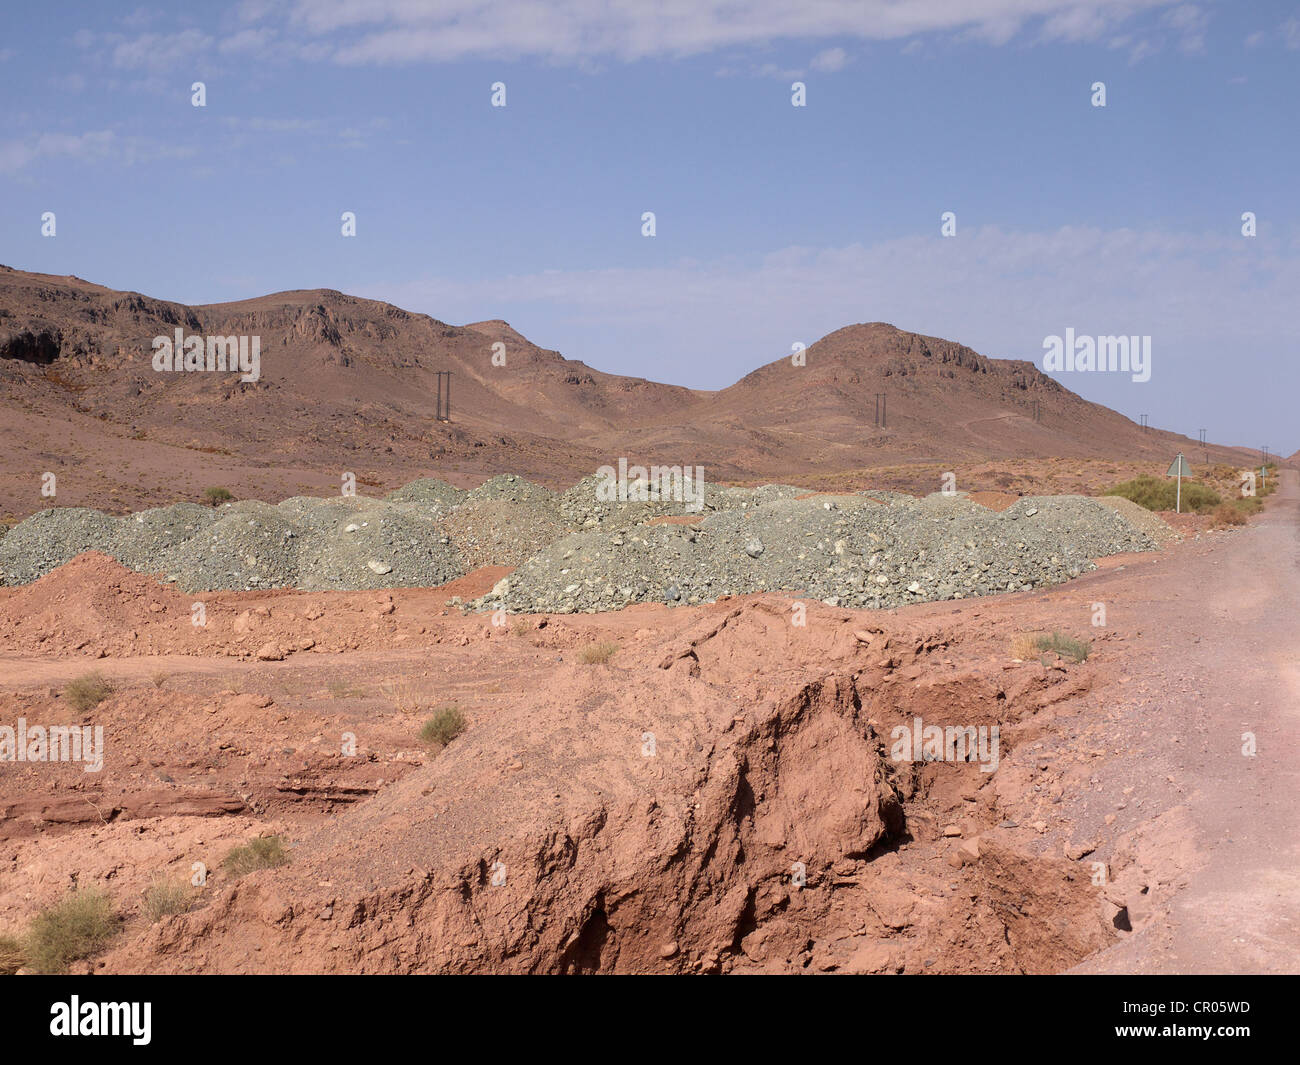 Phosphorus deposits in the Draa Valley, near Tazenakht, Morocco, North Africa, Africa - Stock Image